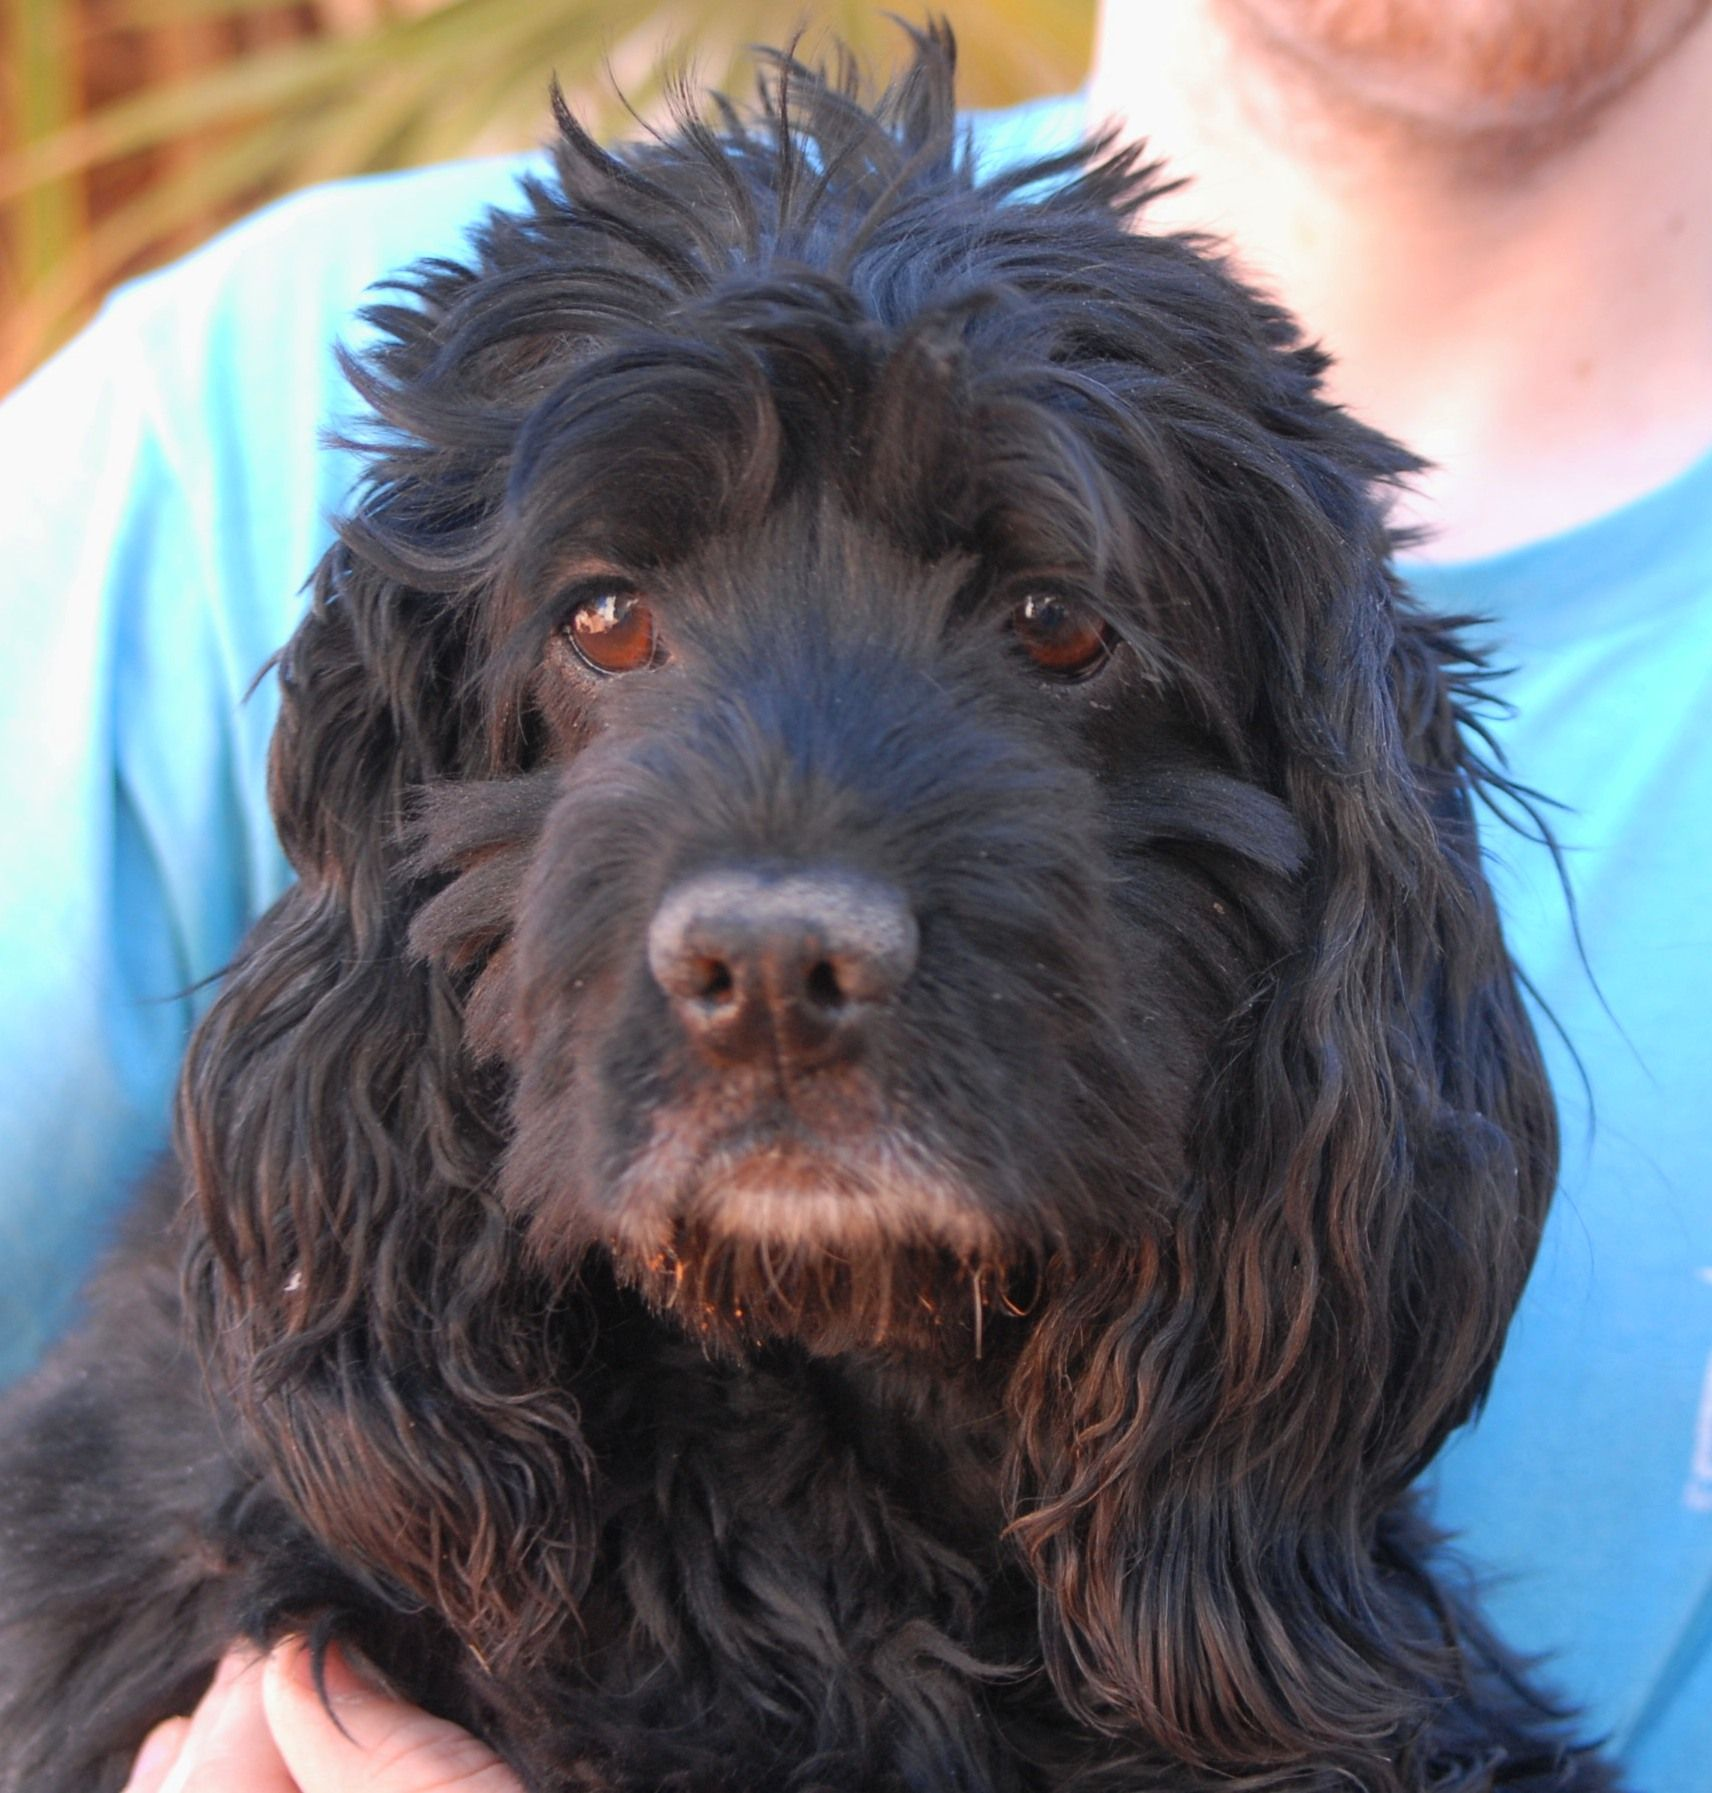 Caesar Is A Very Friendly And Lovable Cocker Spaniel Debuting For Adoption Today At Nevada Spca Www Nevadaspca Or Dog Boarding Near Me Luxury Dog Save Animals